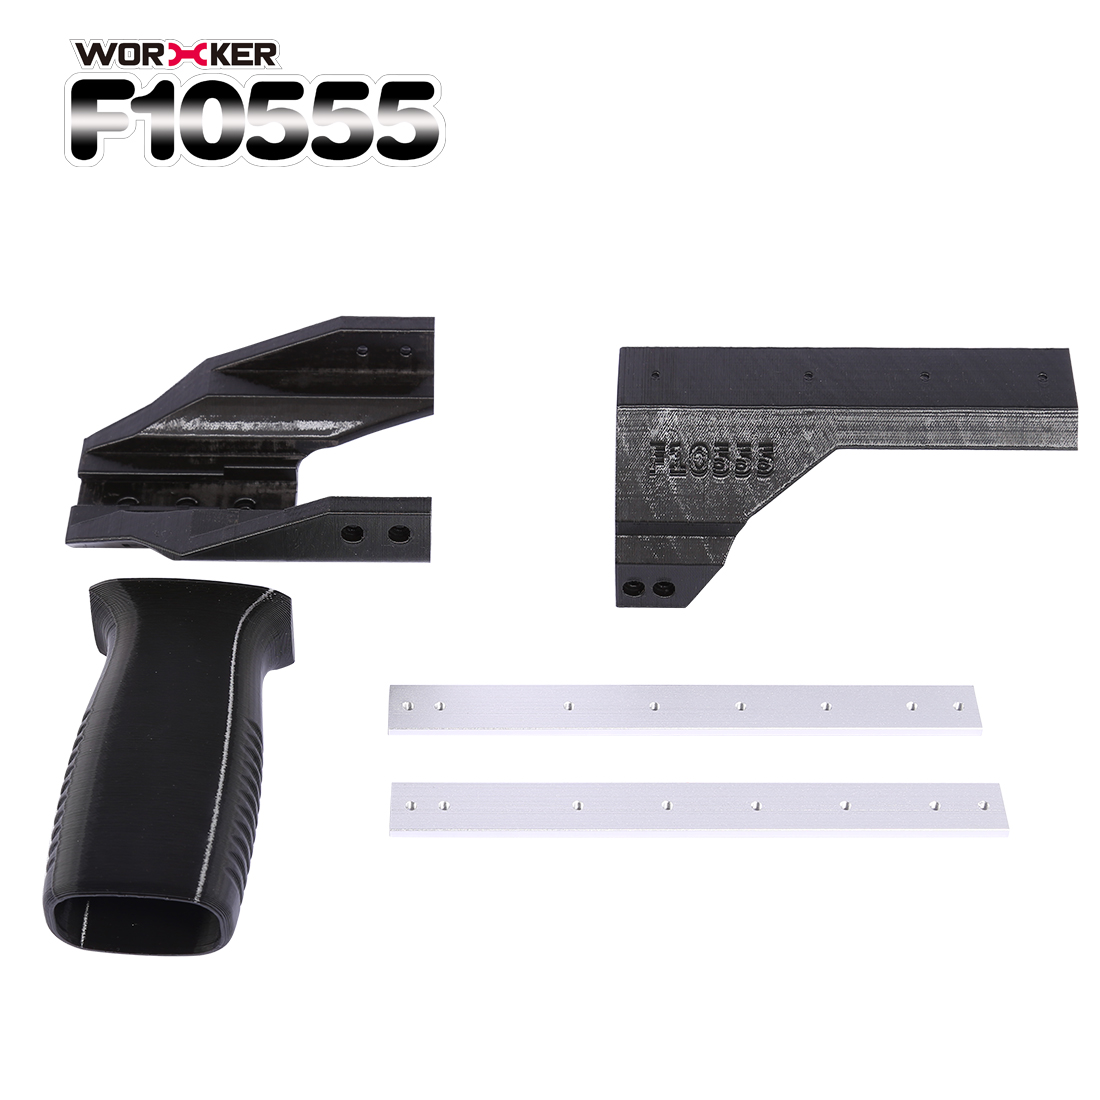 WORKER F10555 3D Printing Pull down Grip Sliding Block Kit for Nerf  Retaliator(Free Disassembly Version) Black-in Toy Guns from Toys & Hobbies  on